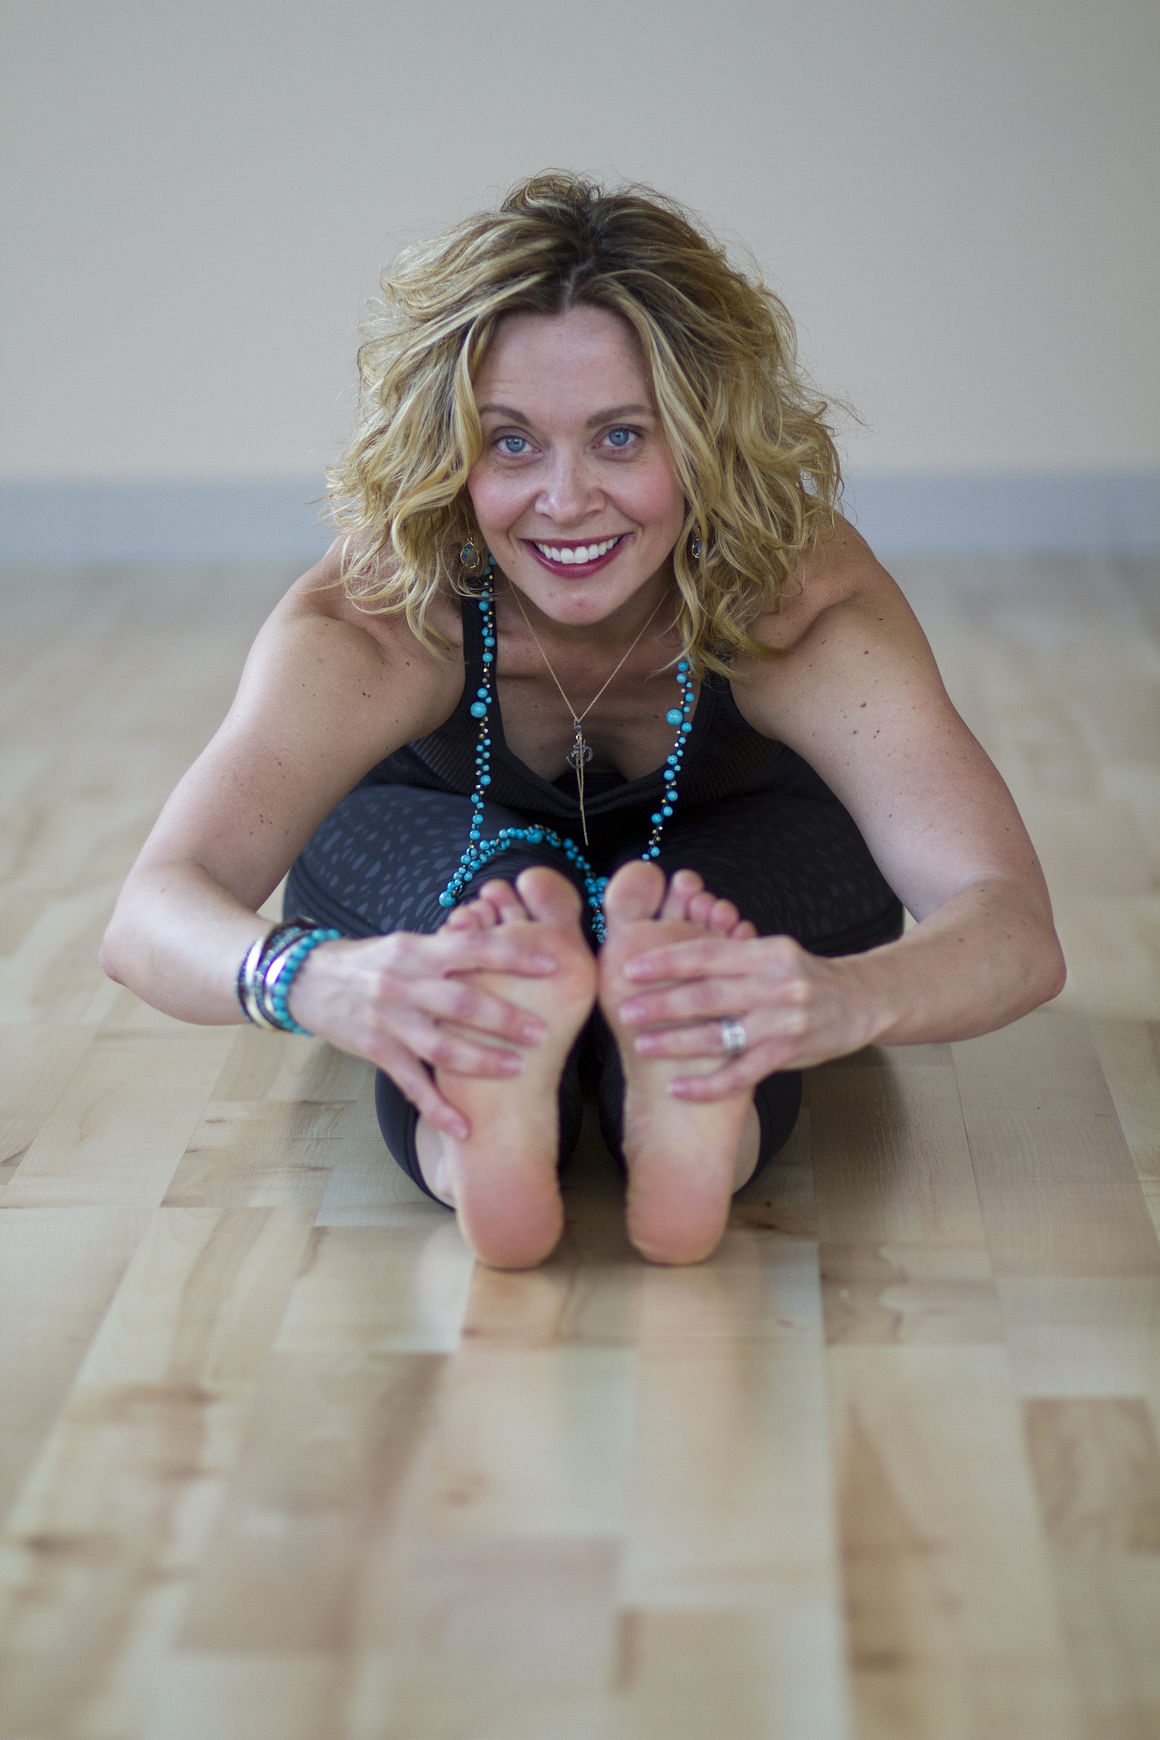 The mind-body connection: Iowa City woman works to practice what she preaches, and vice versa